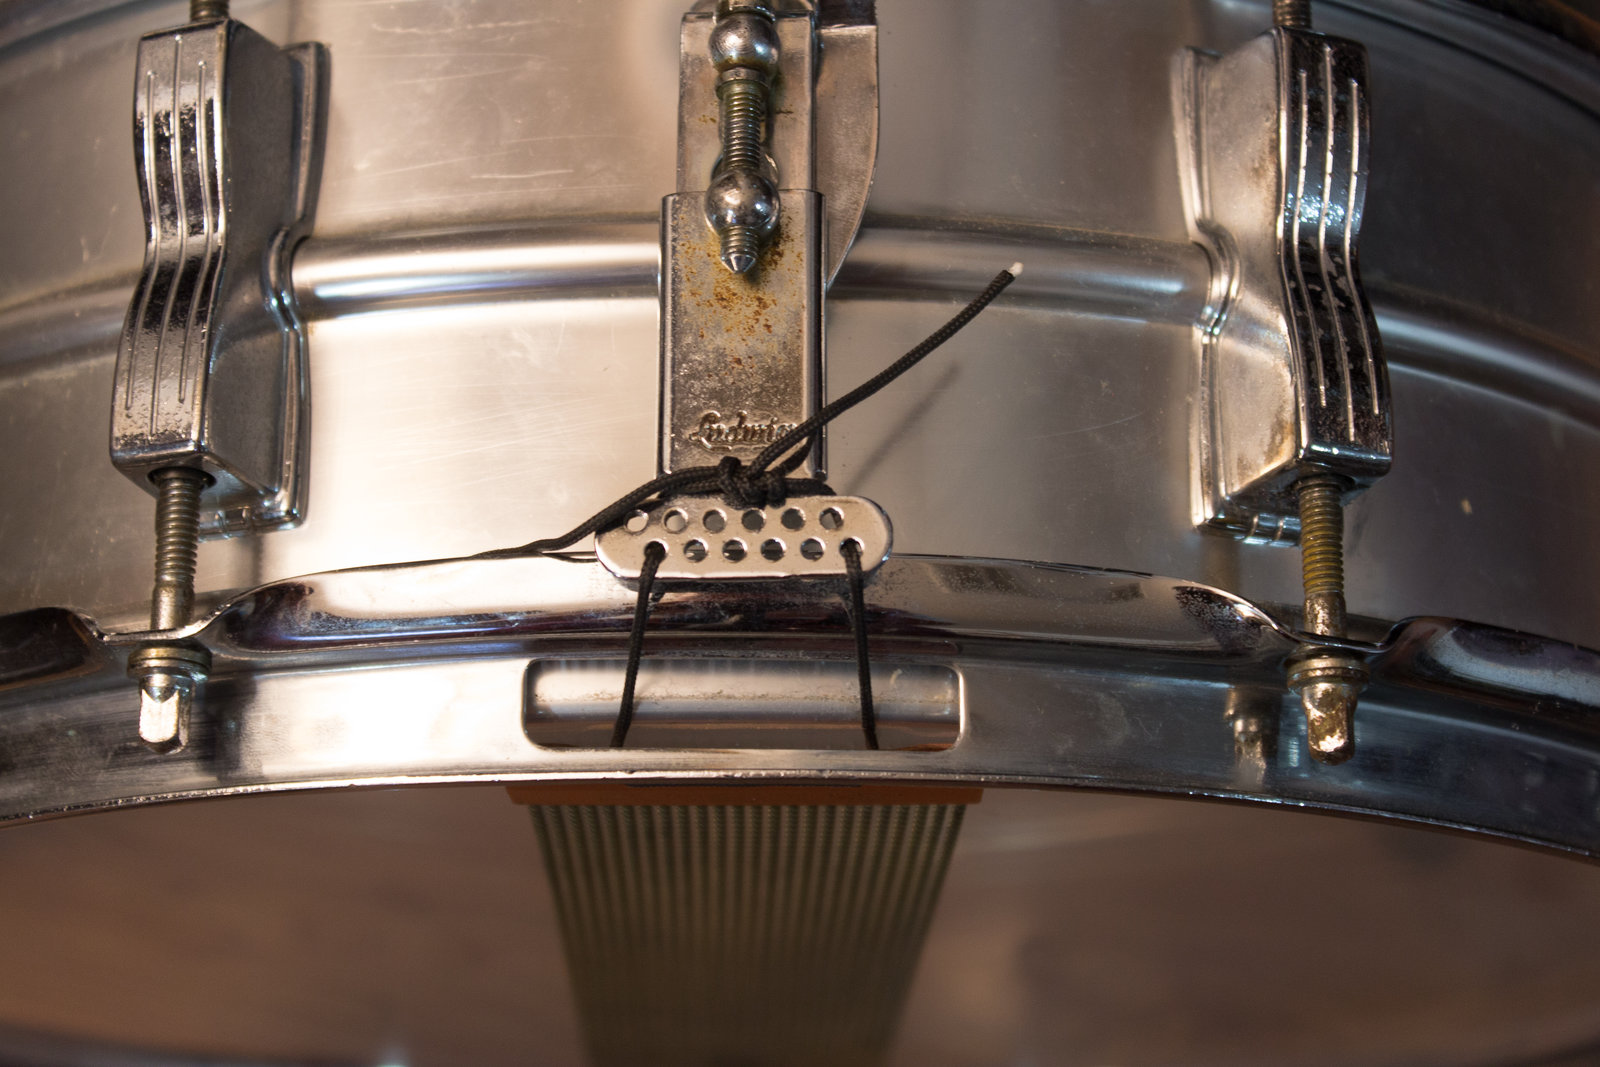 Tying a ludwig supraphonic strainer the best way